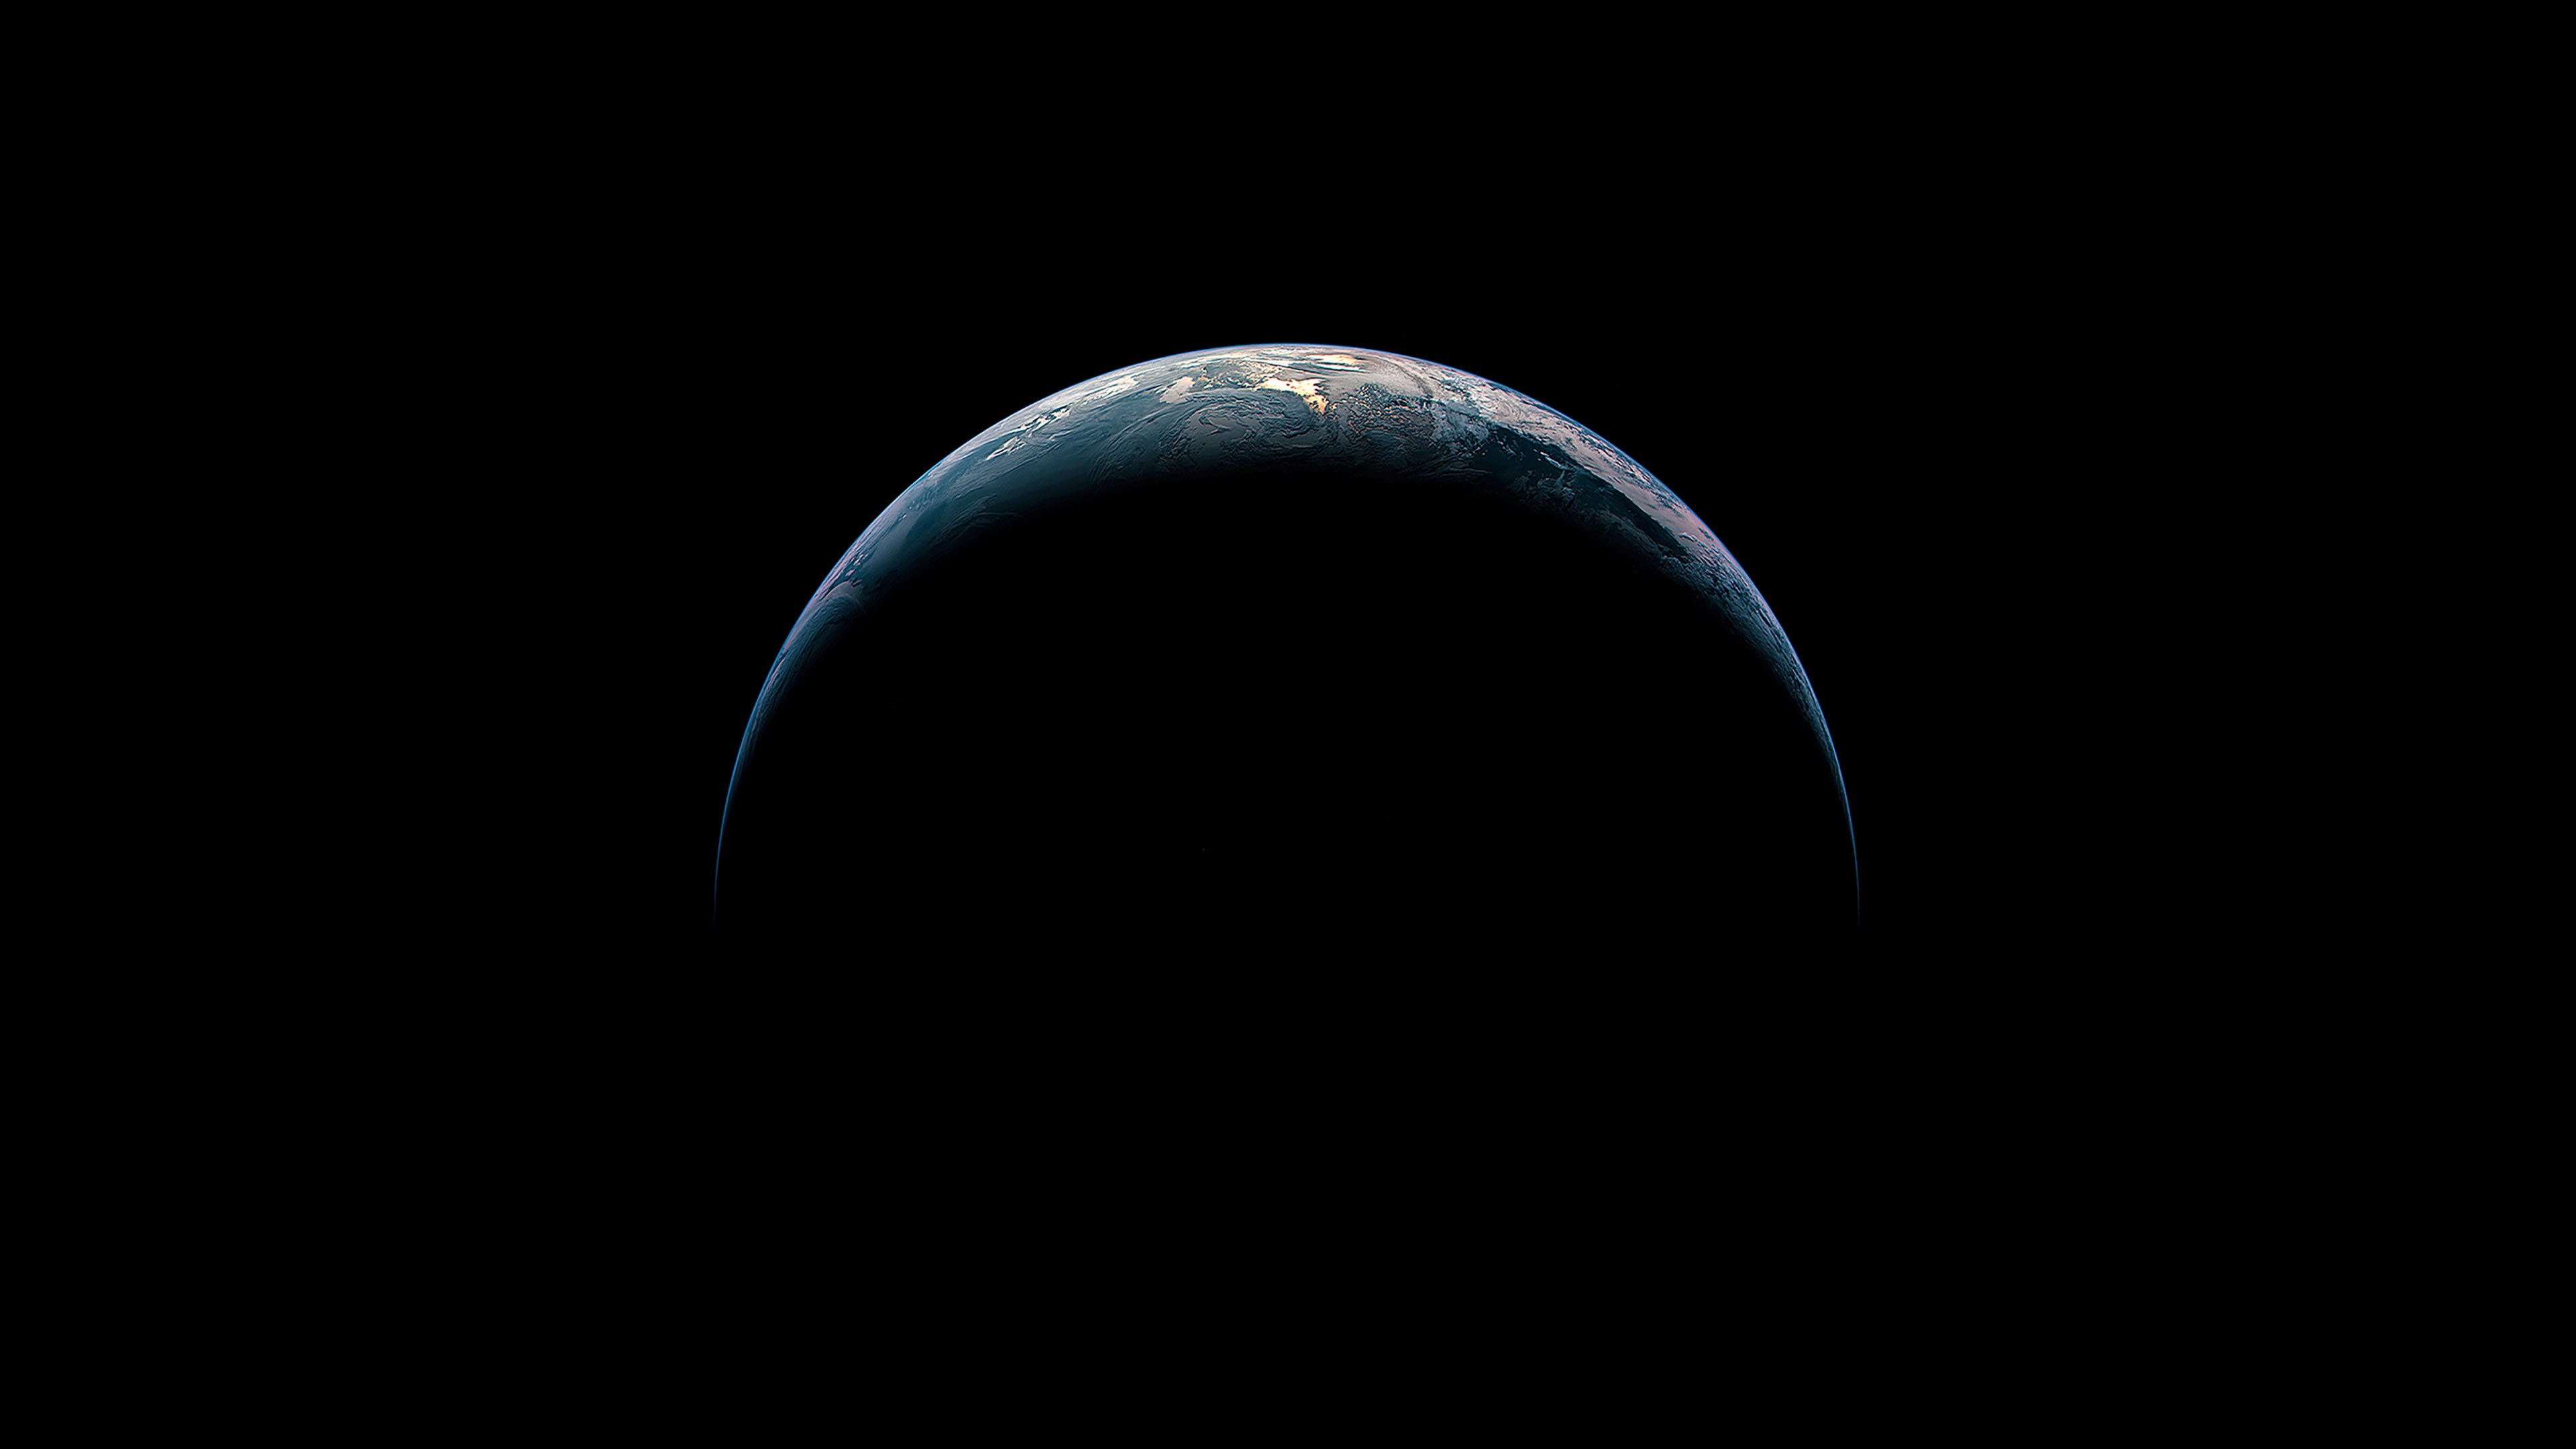 ac94-wallpaper-ios8-apple-iphone6-plus-earth-from-sky ...